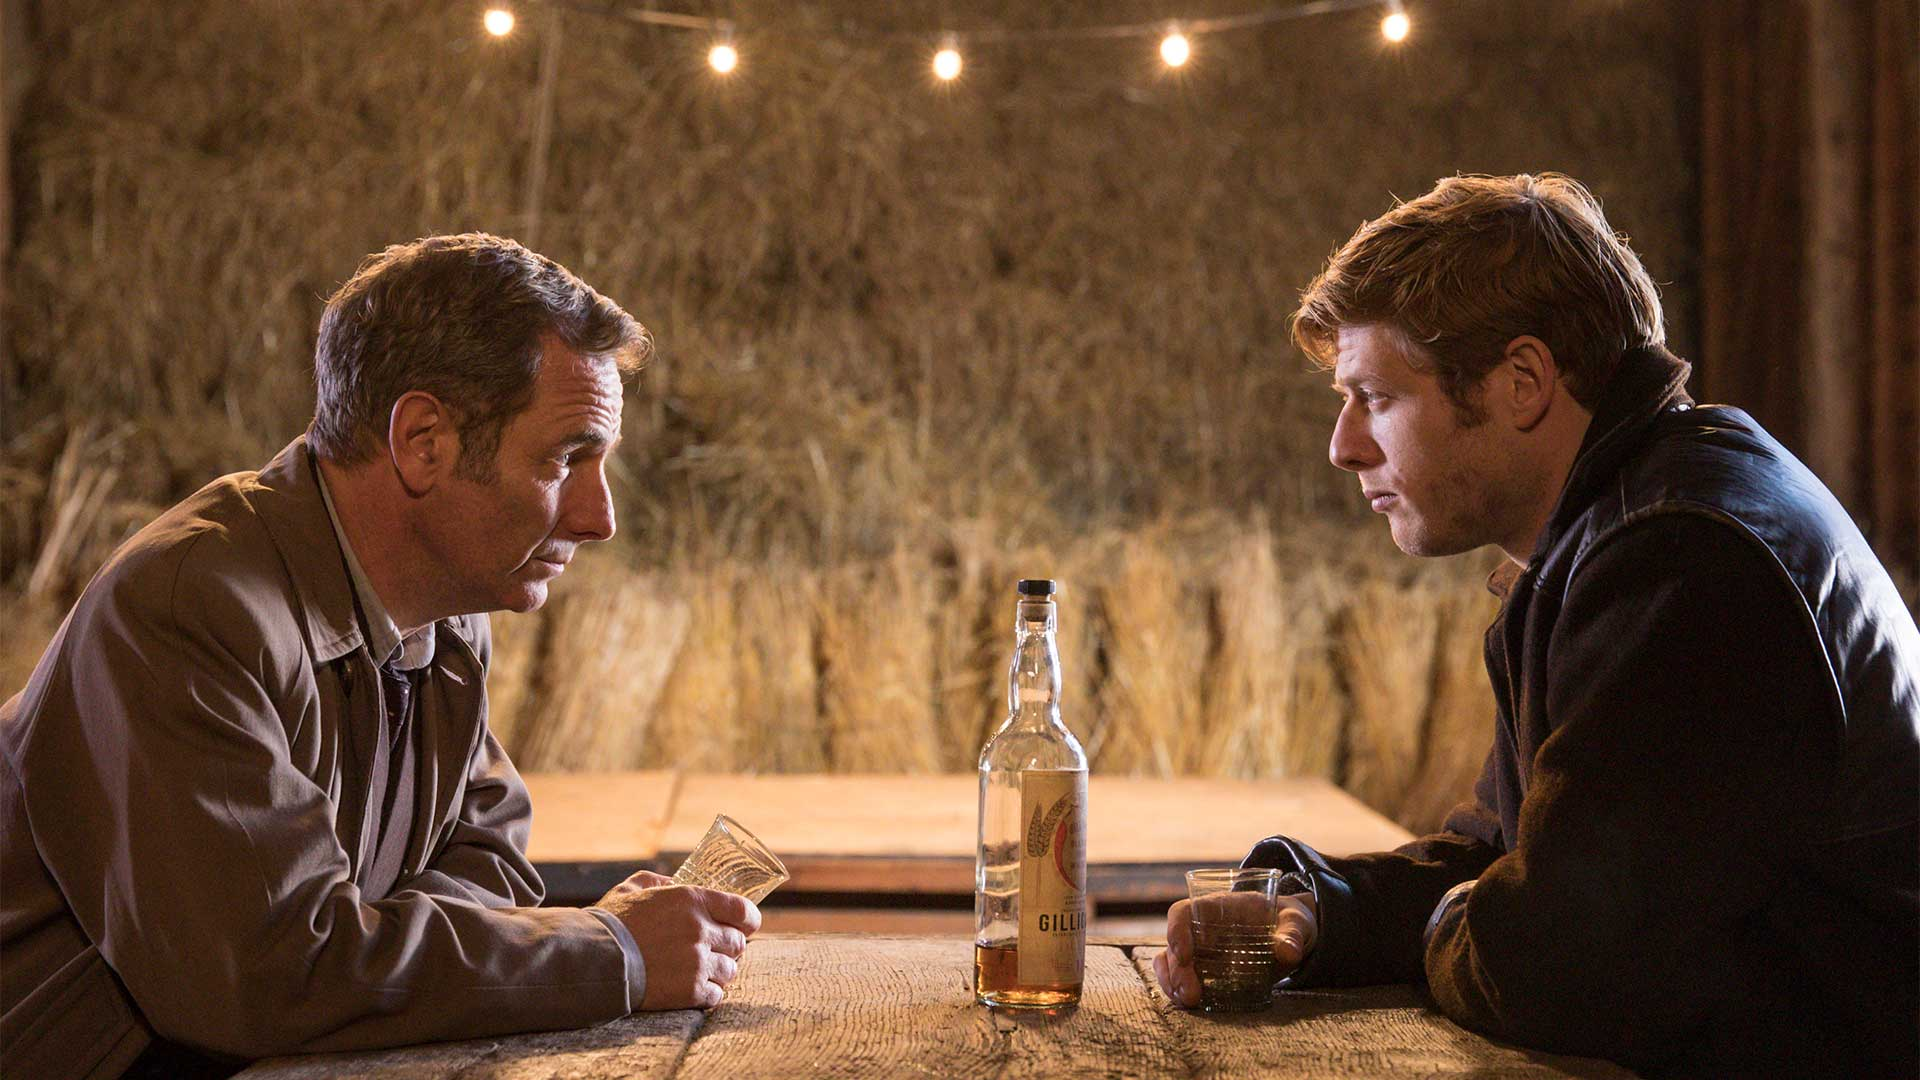 Pictured from left to right: Robson Green as Geordie Keating and James Norton as Sidney Chambers